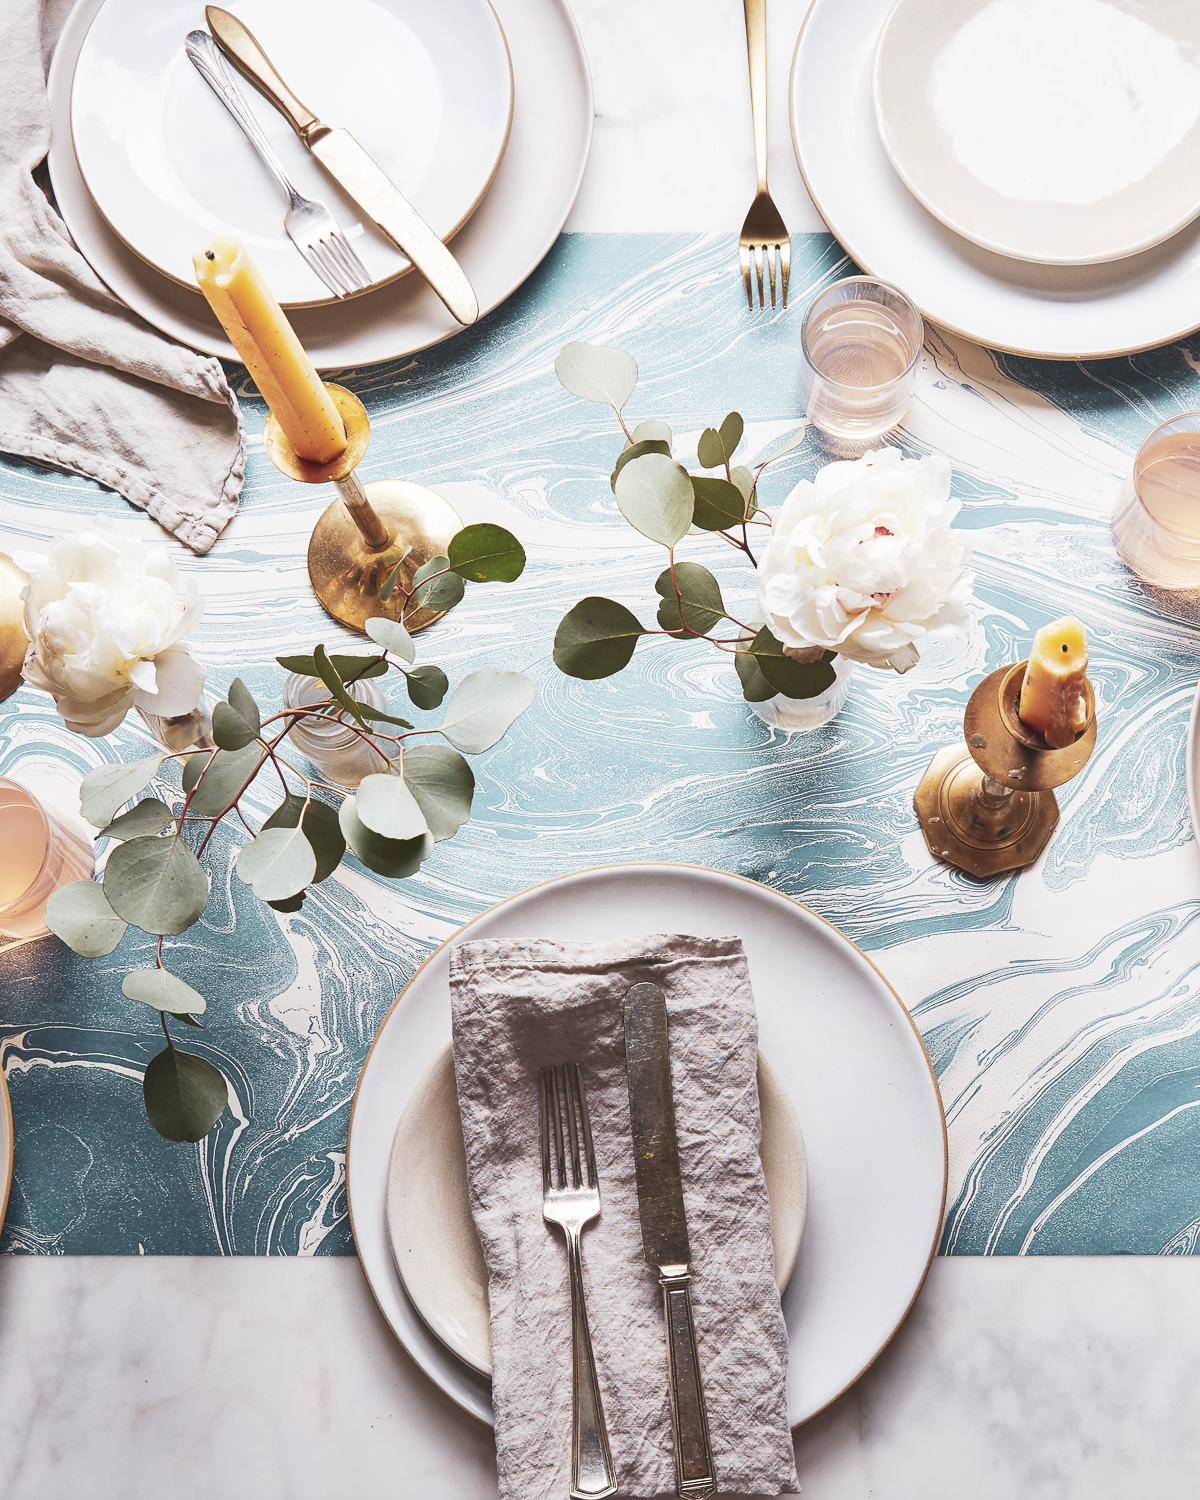 2018-0405_hester-and-cook_recycled-paper-table-runners_1x1_bobbi-lin_10700-1.jpg